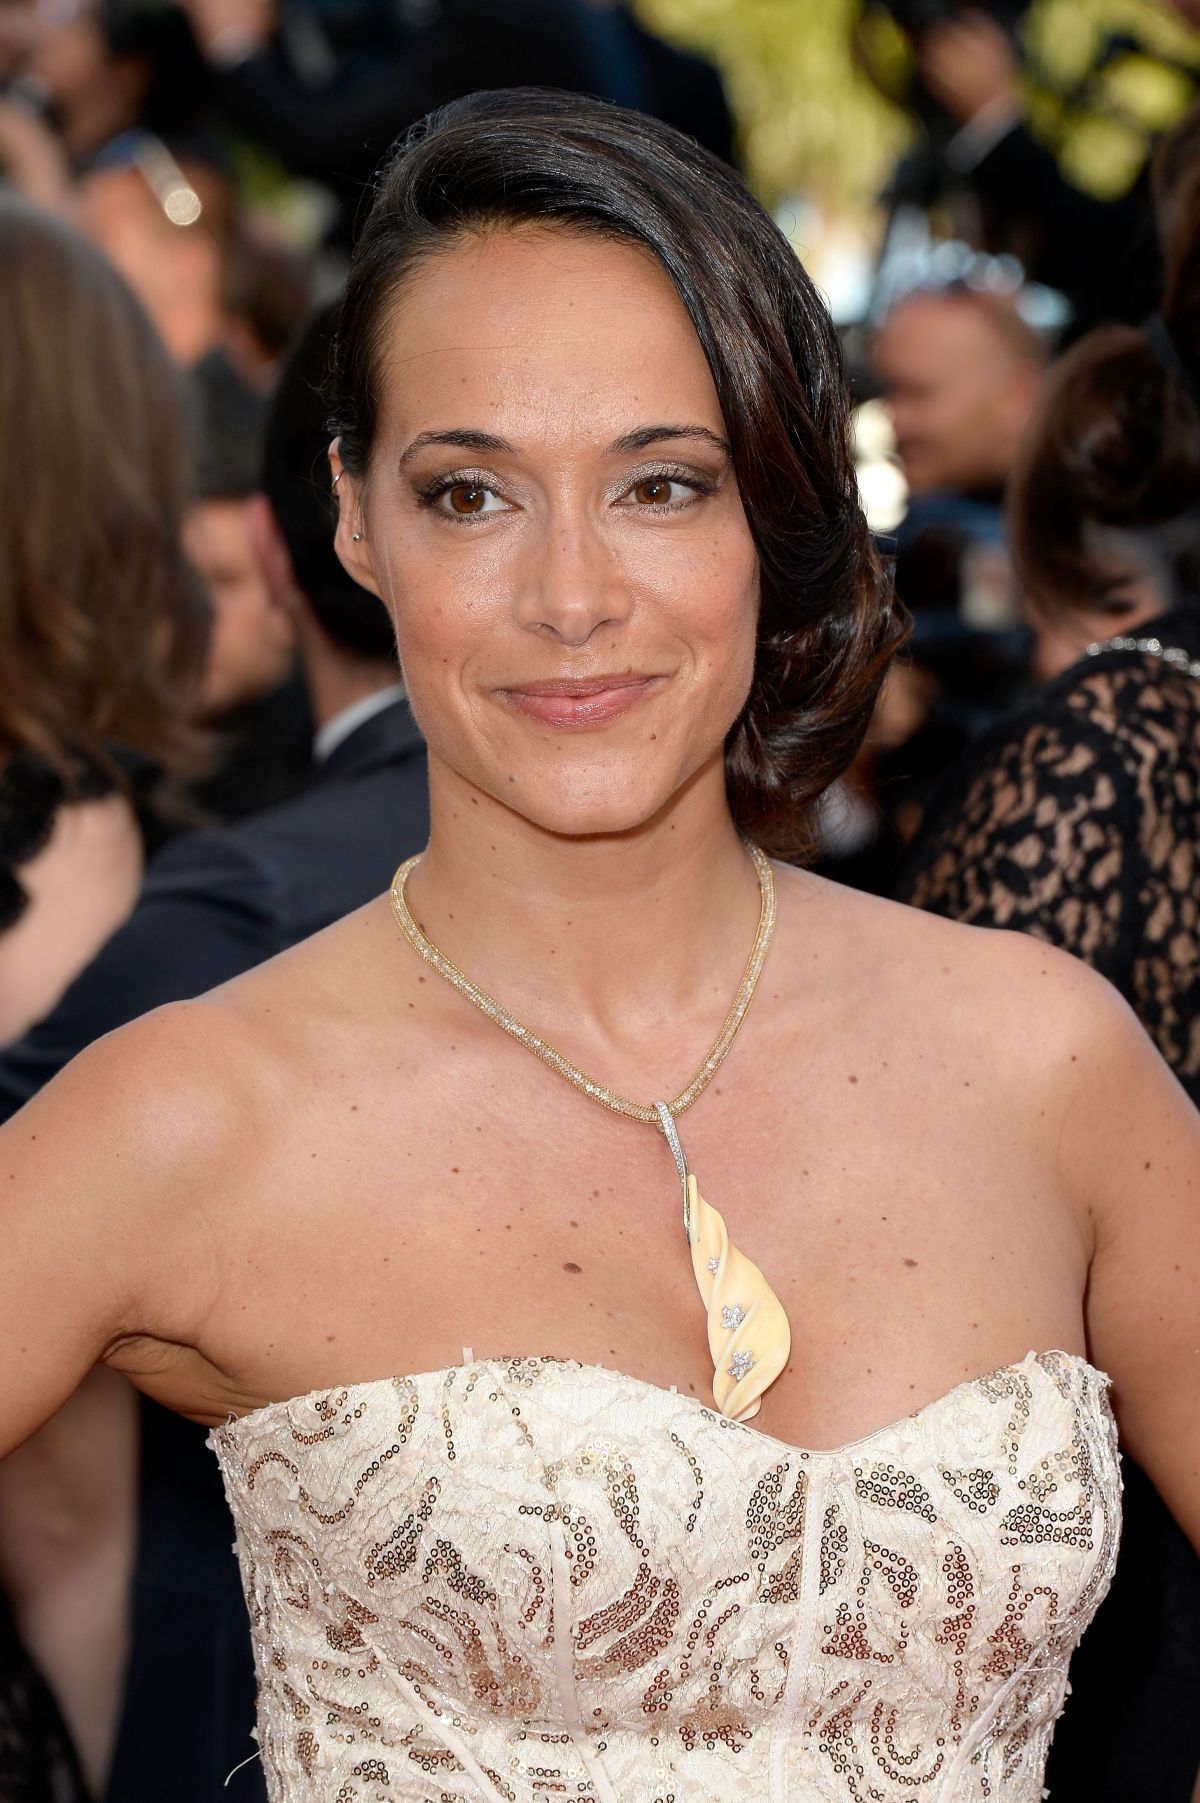 KARINE LIMA at Clouds of Sils Maria Premiere at Cannes Film Festival